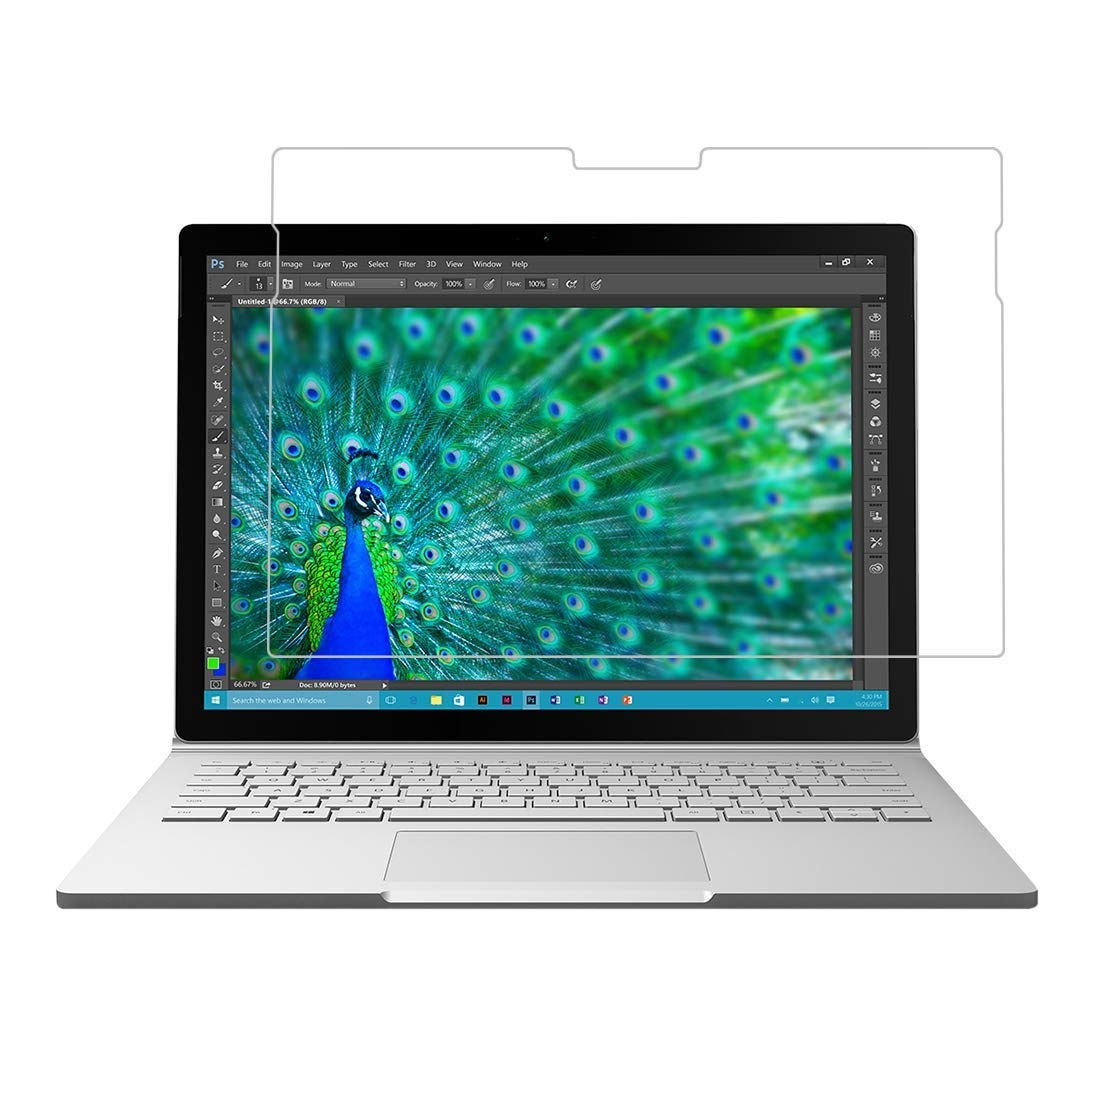 [2 Packs] Microsoft Surface Book 2 (13.5'') Screen Protector, Surface Book 2 (13.5'') Tempered Glass Screen Protector, Scratch-Resistant Clear Screen Protector for 13.5'' Microsoft Surface Book 2